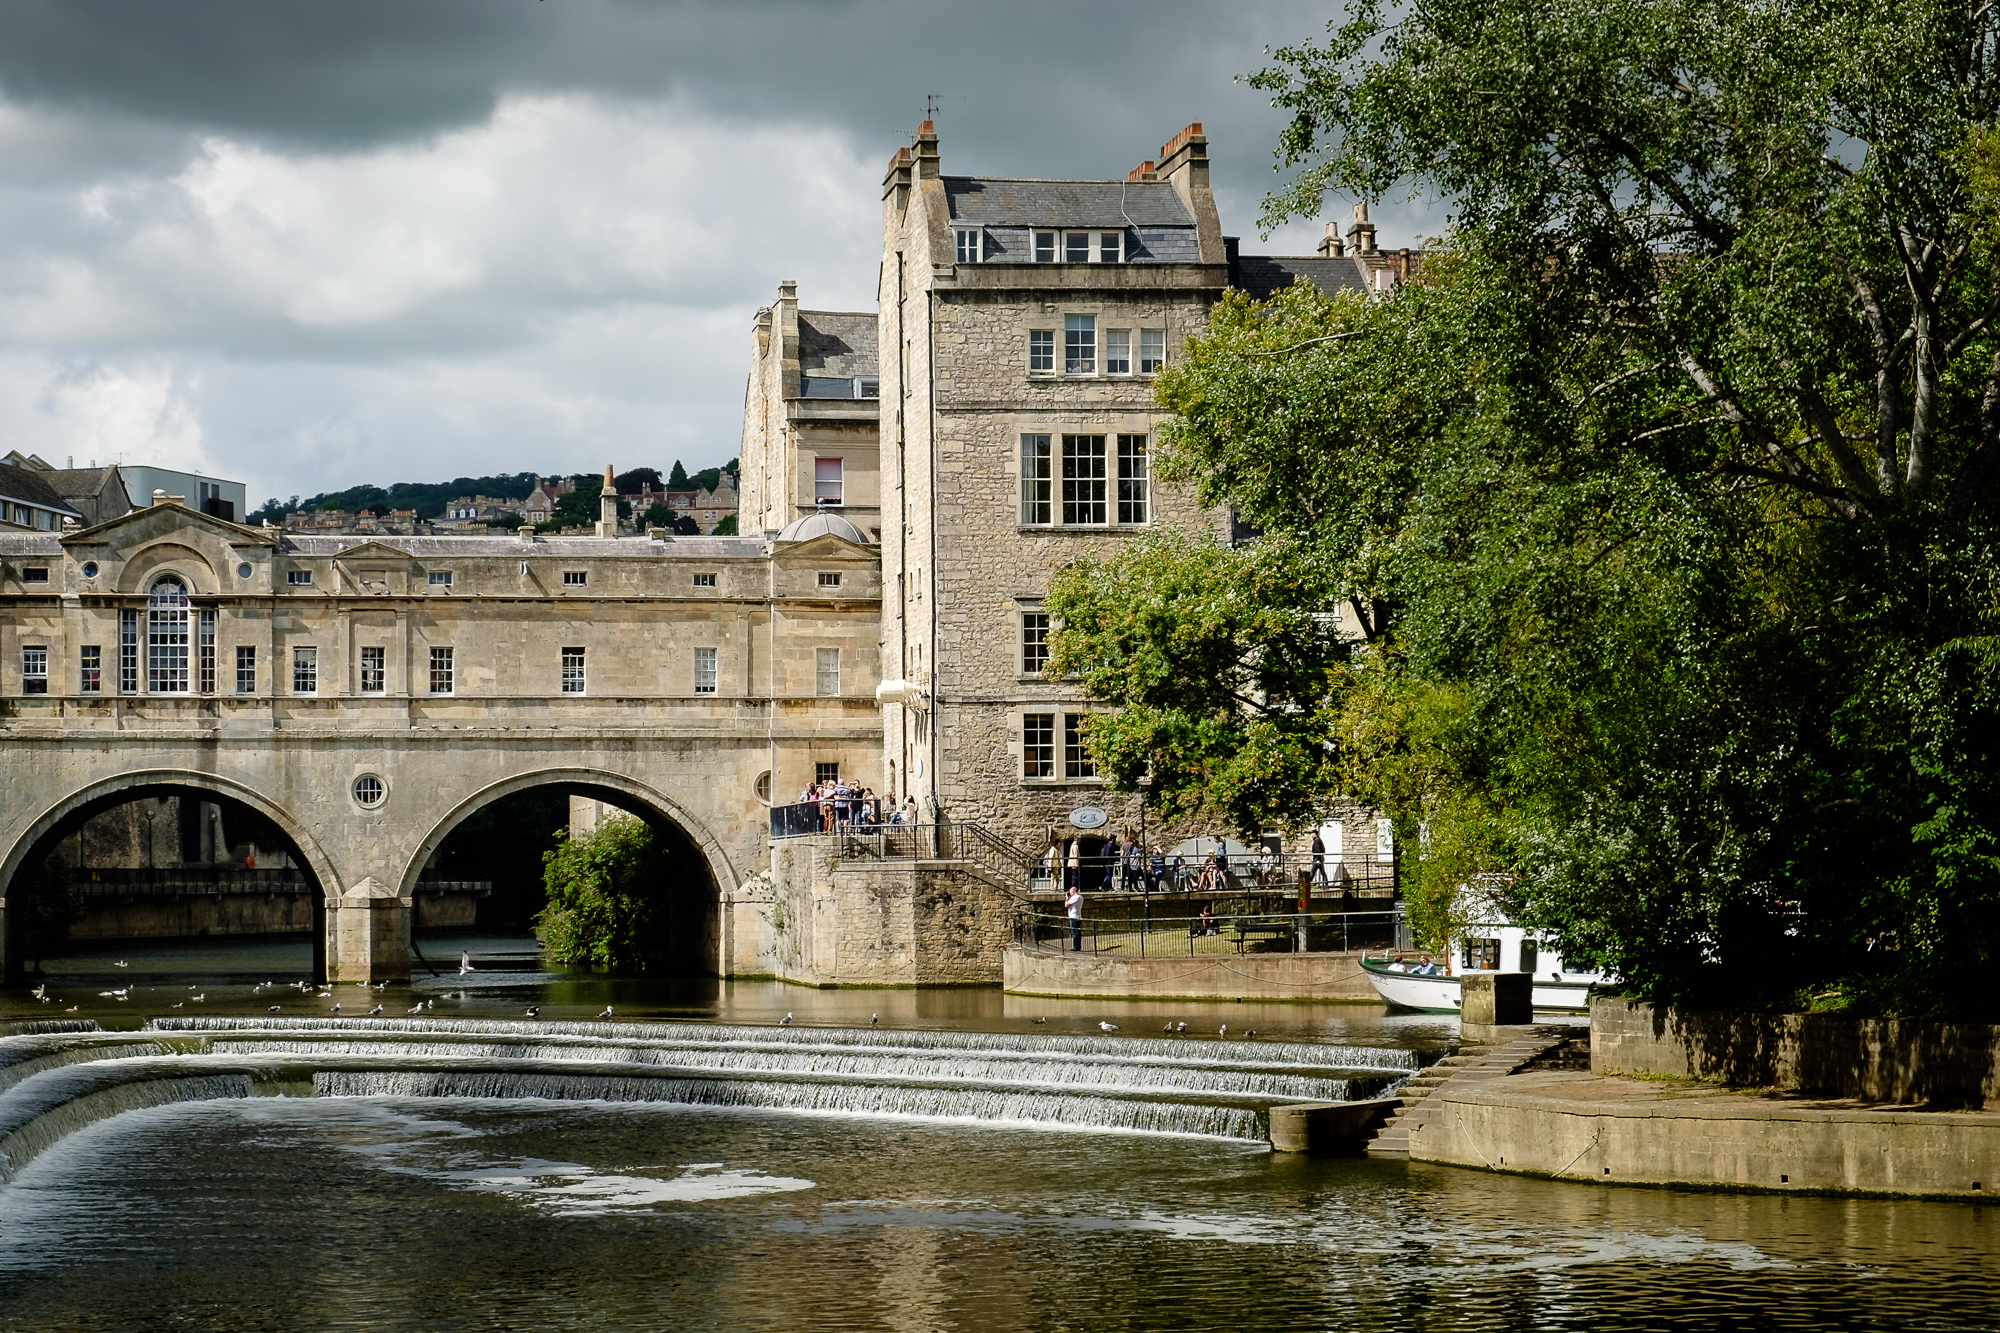 Cityscape photo of Bath, UK by Trevor Sherwin